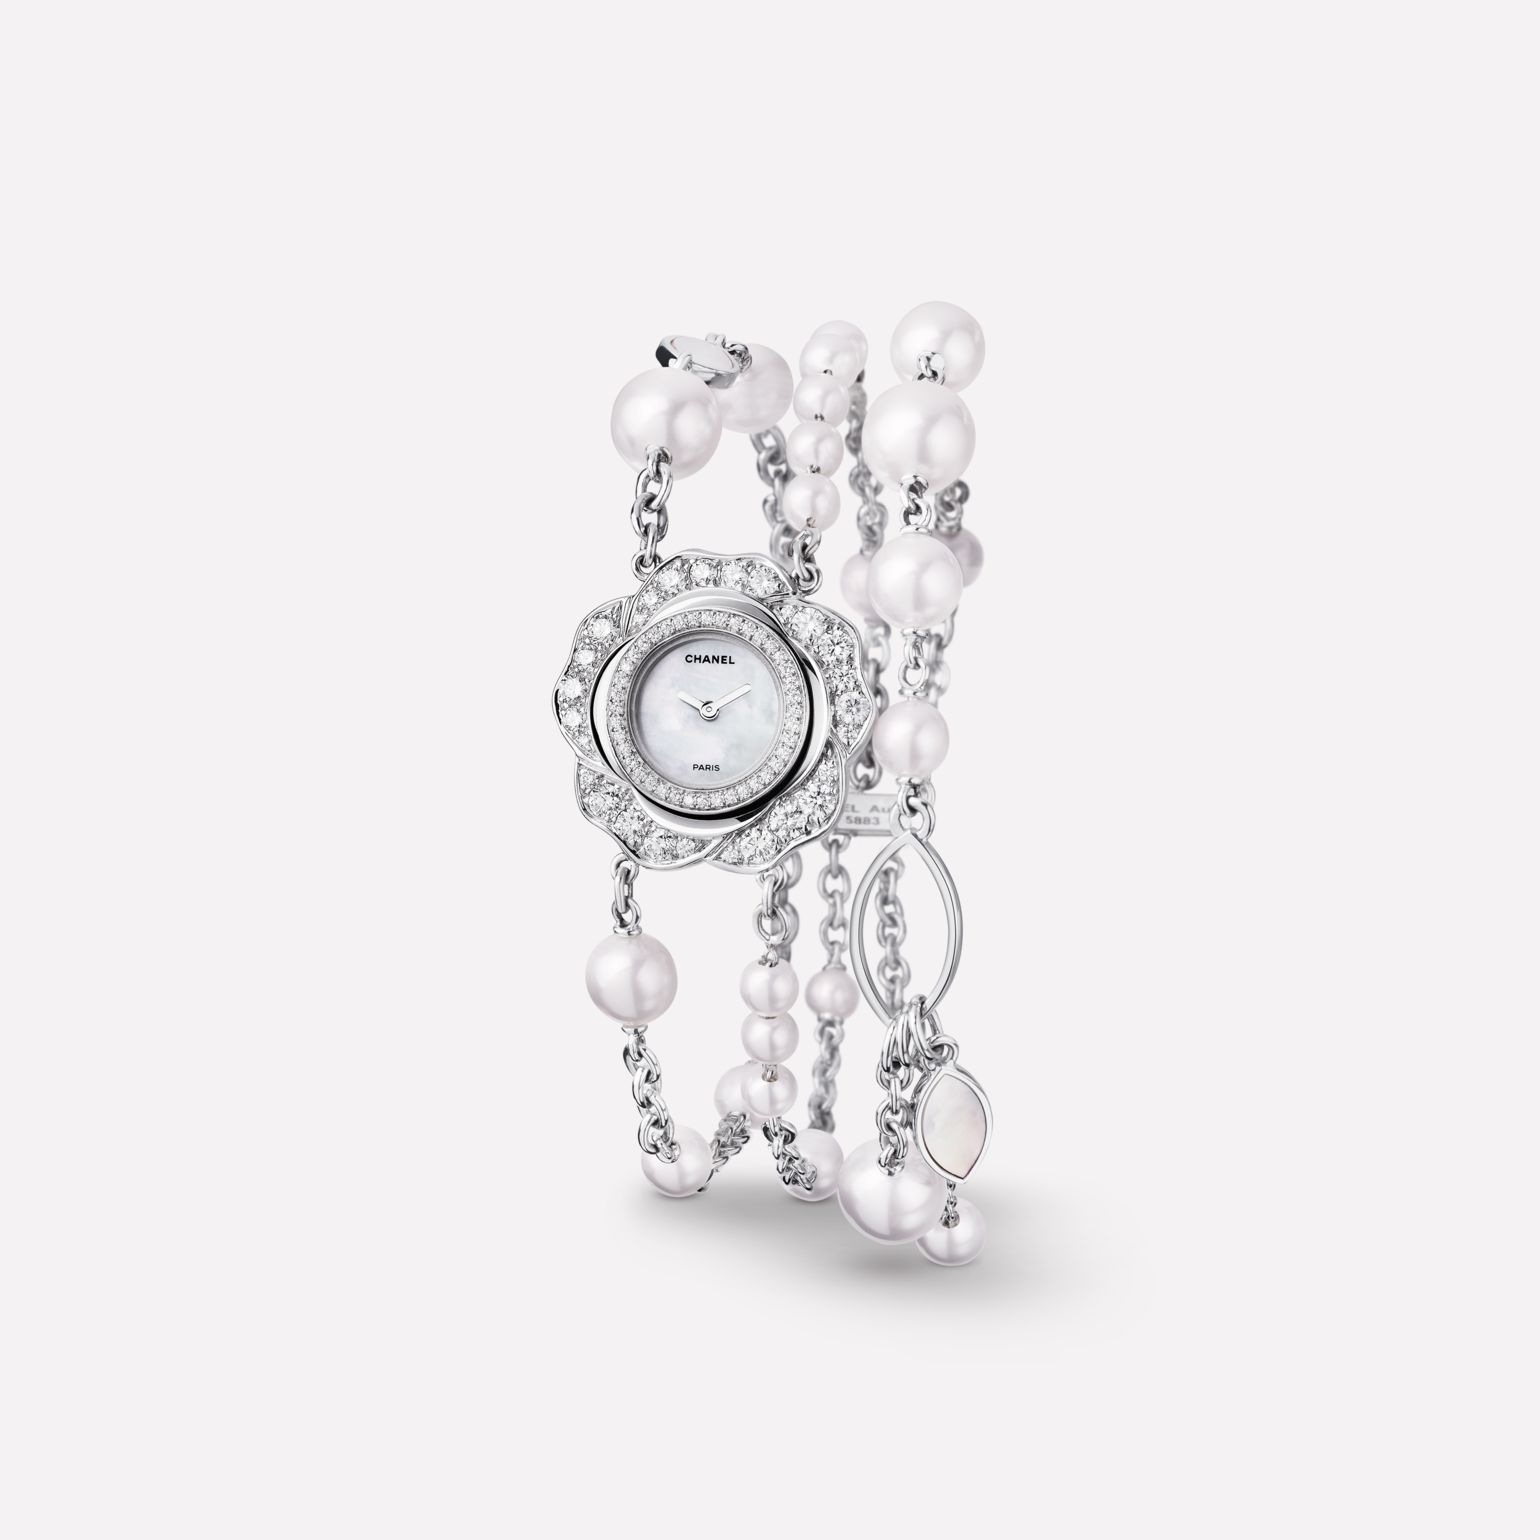 Camélia Jewellery Watch Watch with camellia bud motif in 18K white gold, diamonds and cultured pearls